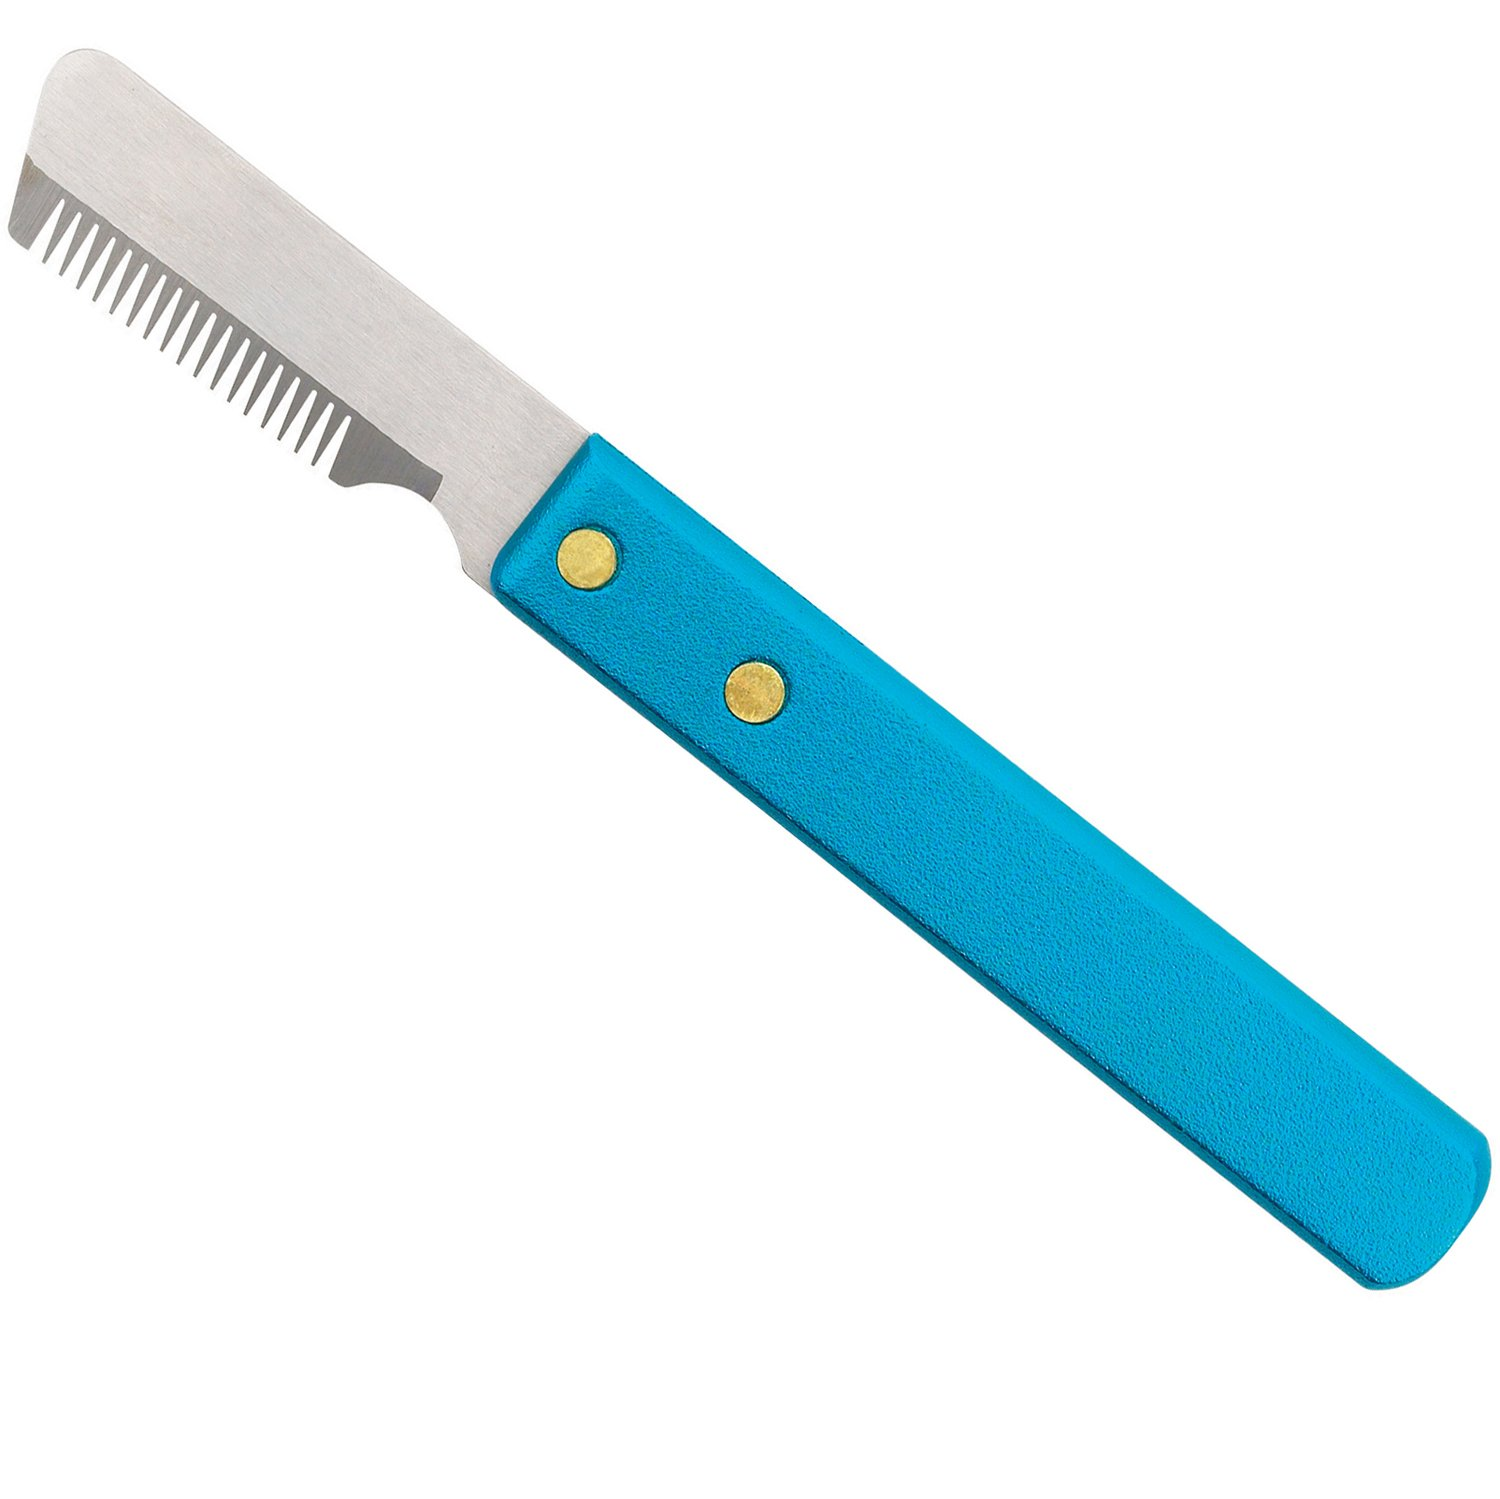 Master Grooming Tools Stripping Knives — Non-Slip Tools for Grooming Dogs - Medium, 6¾''